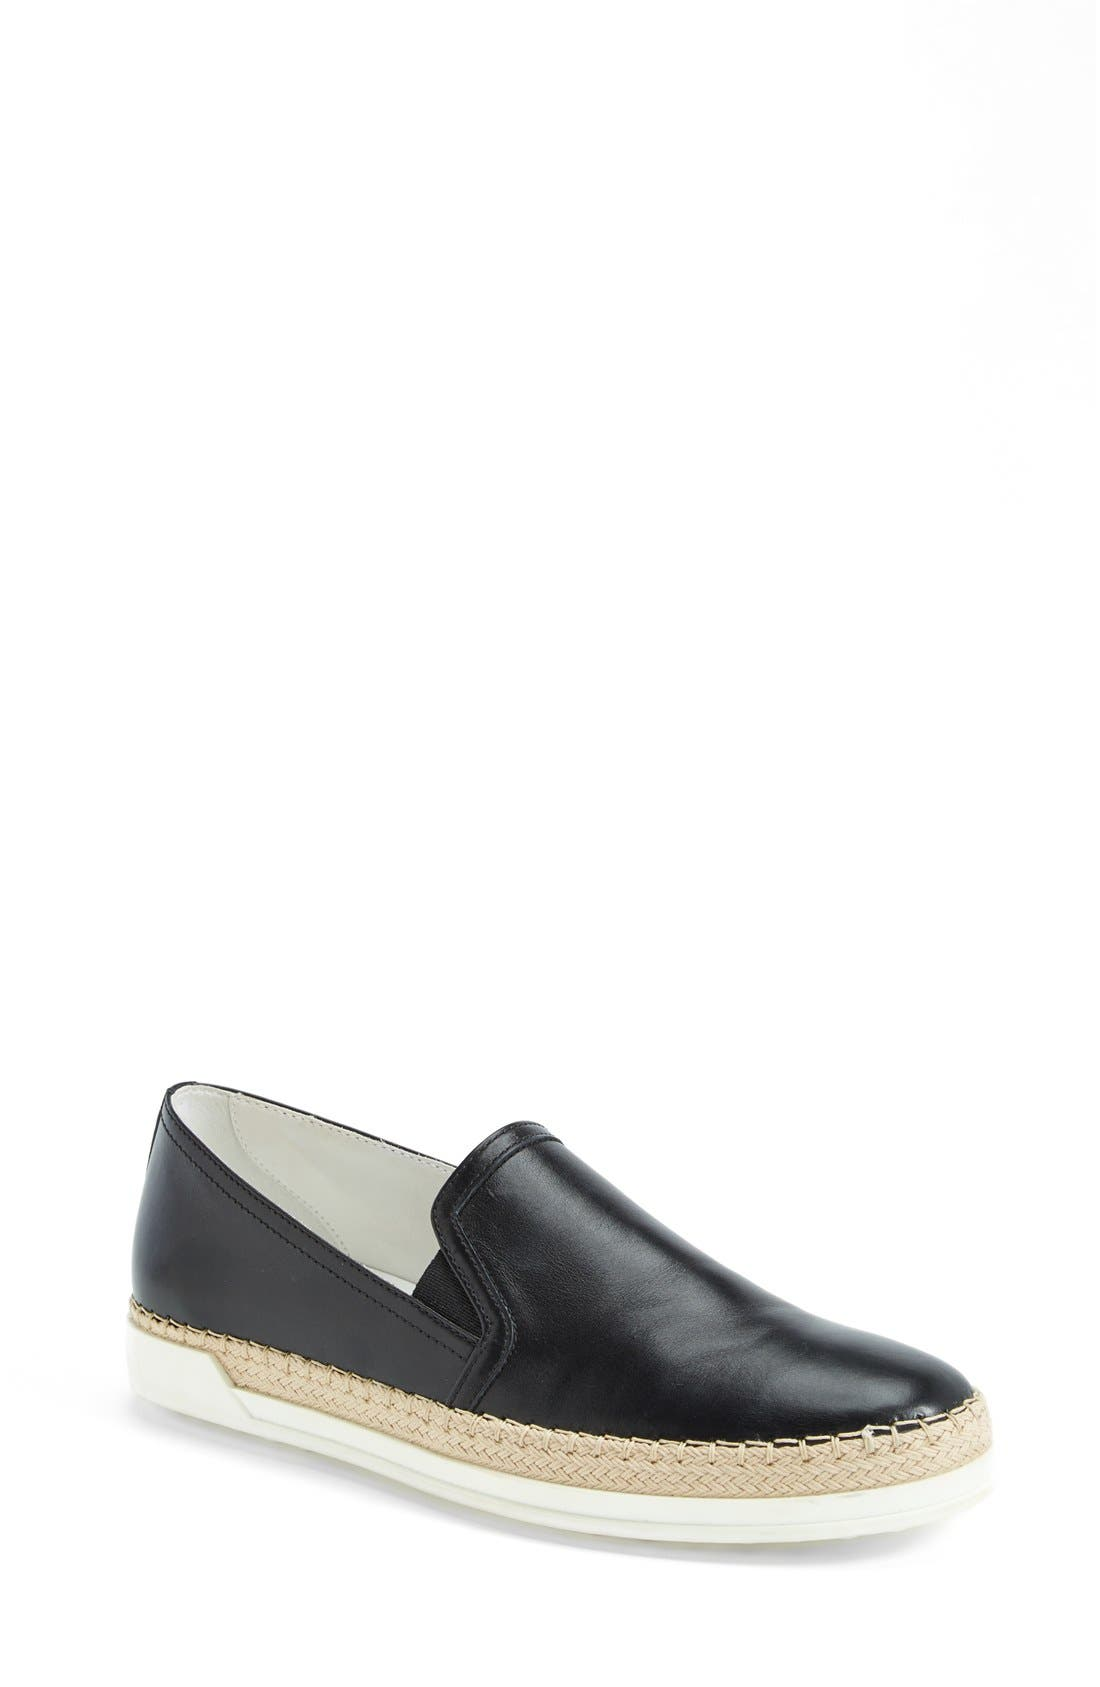 TOD'S Slip-On Leather Sneaker, Main, color, 001